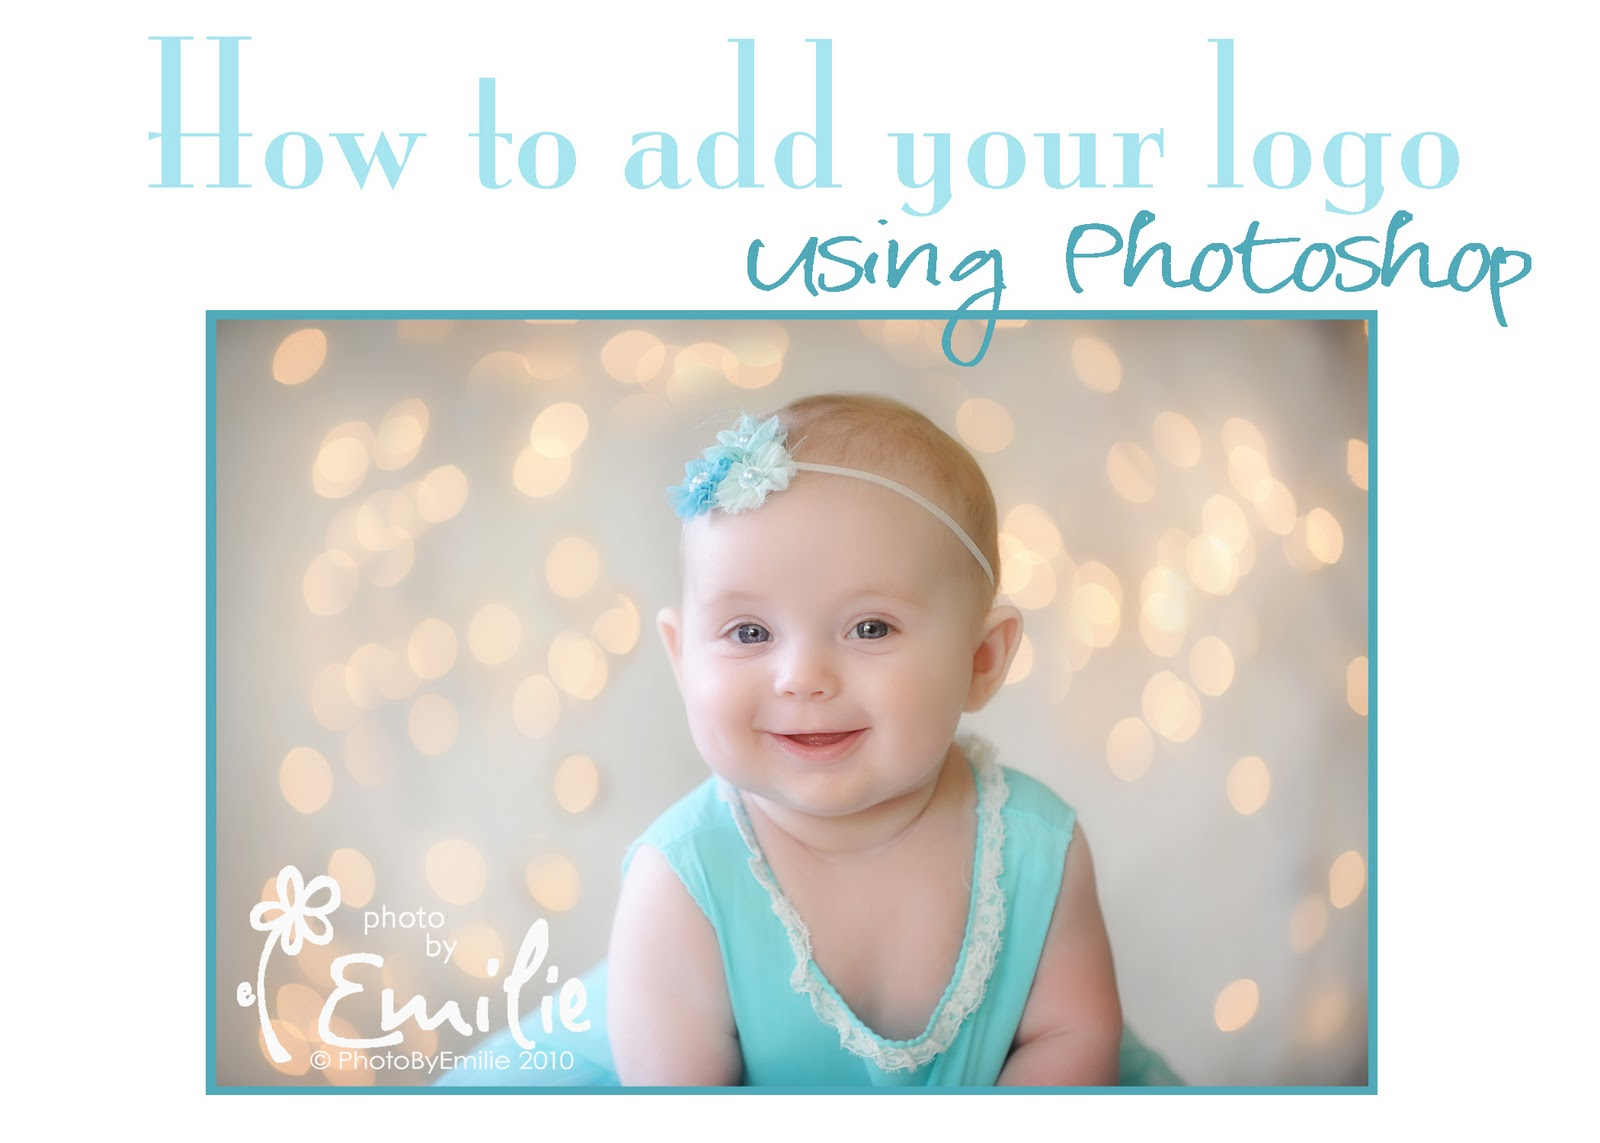 How to Edit an Image with Photoshop, Add a Logo and Text ...